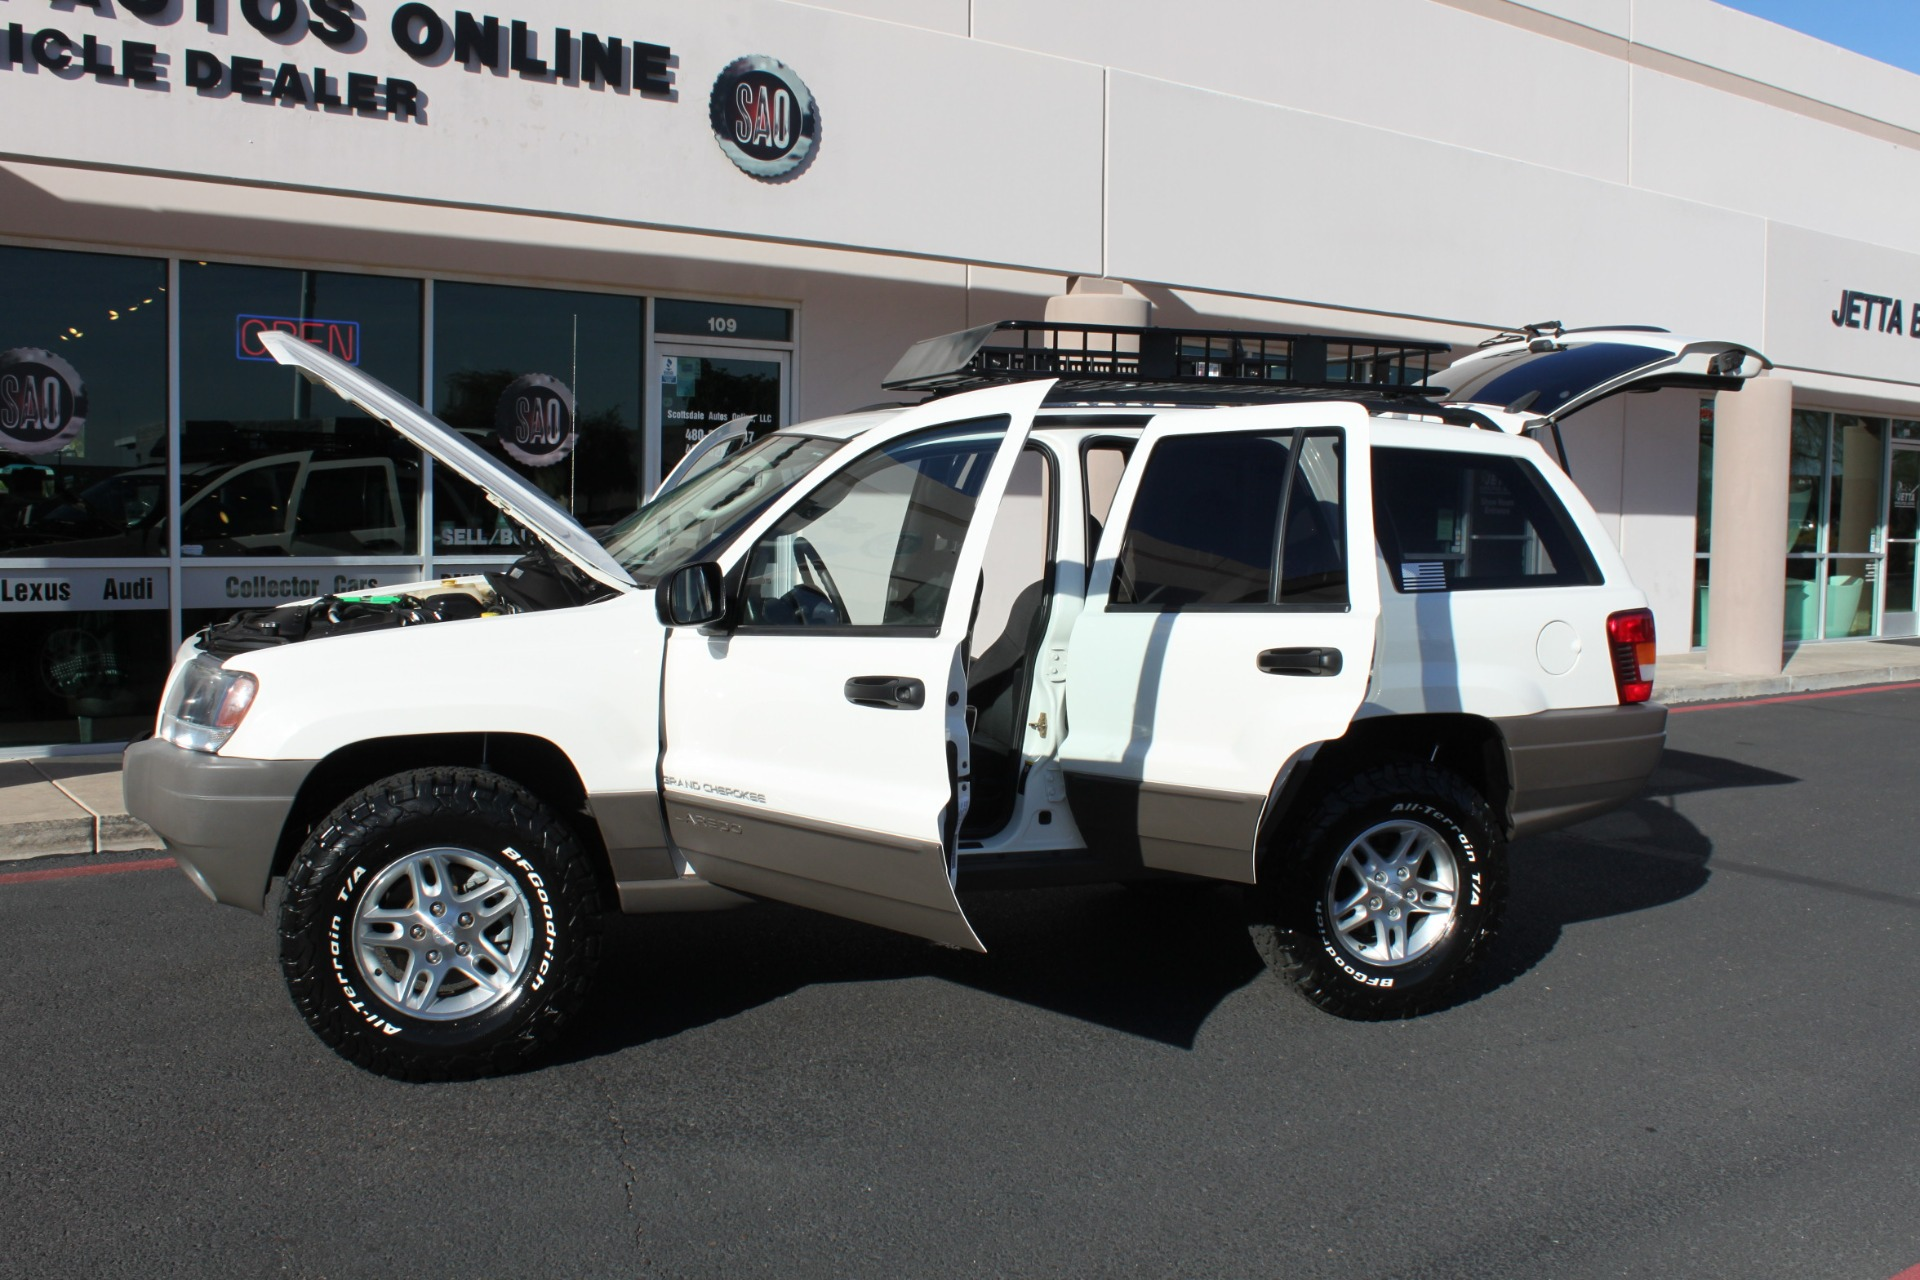 Used-2004-Jeep-Grand-Cherokee-Laredo-Land-Cruiser